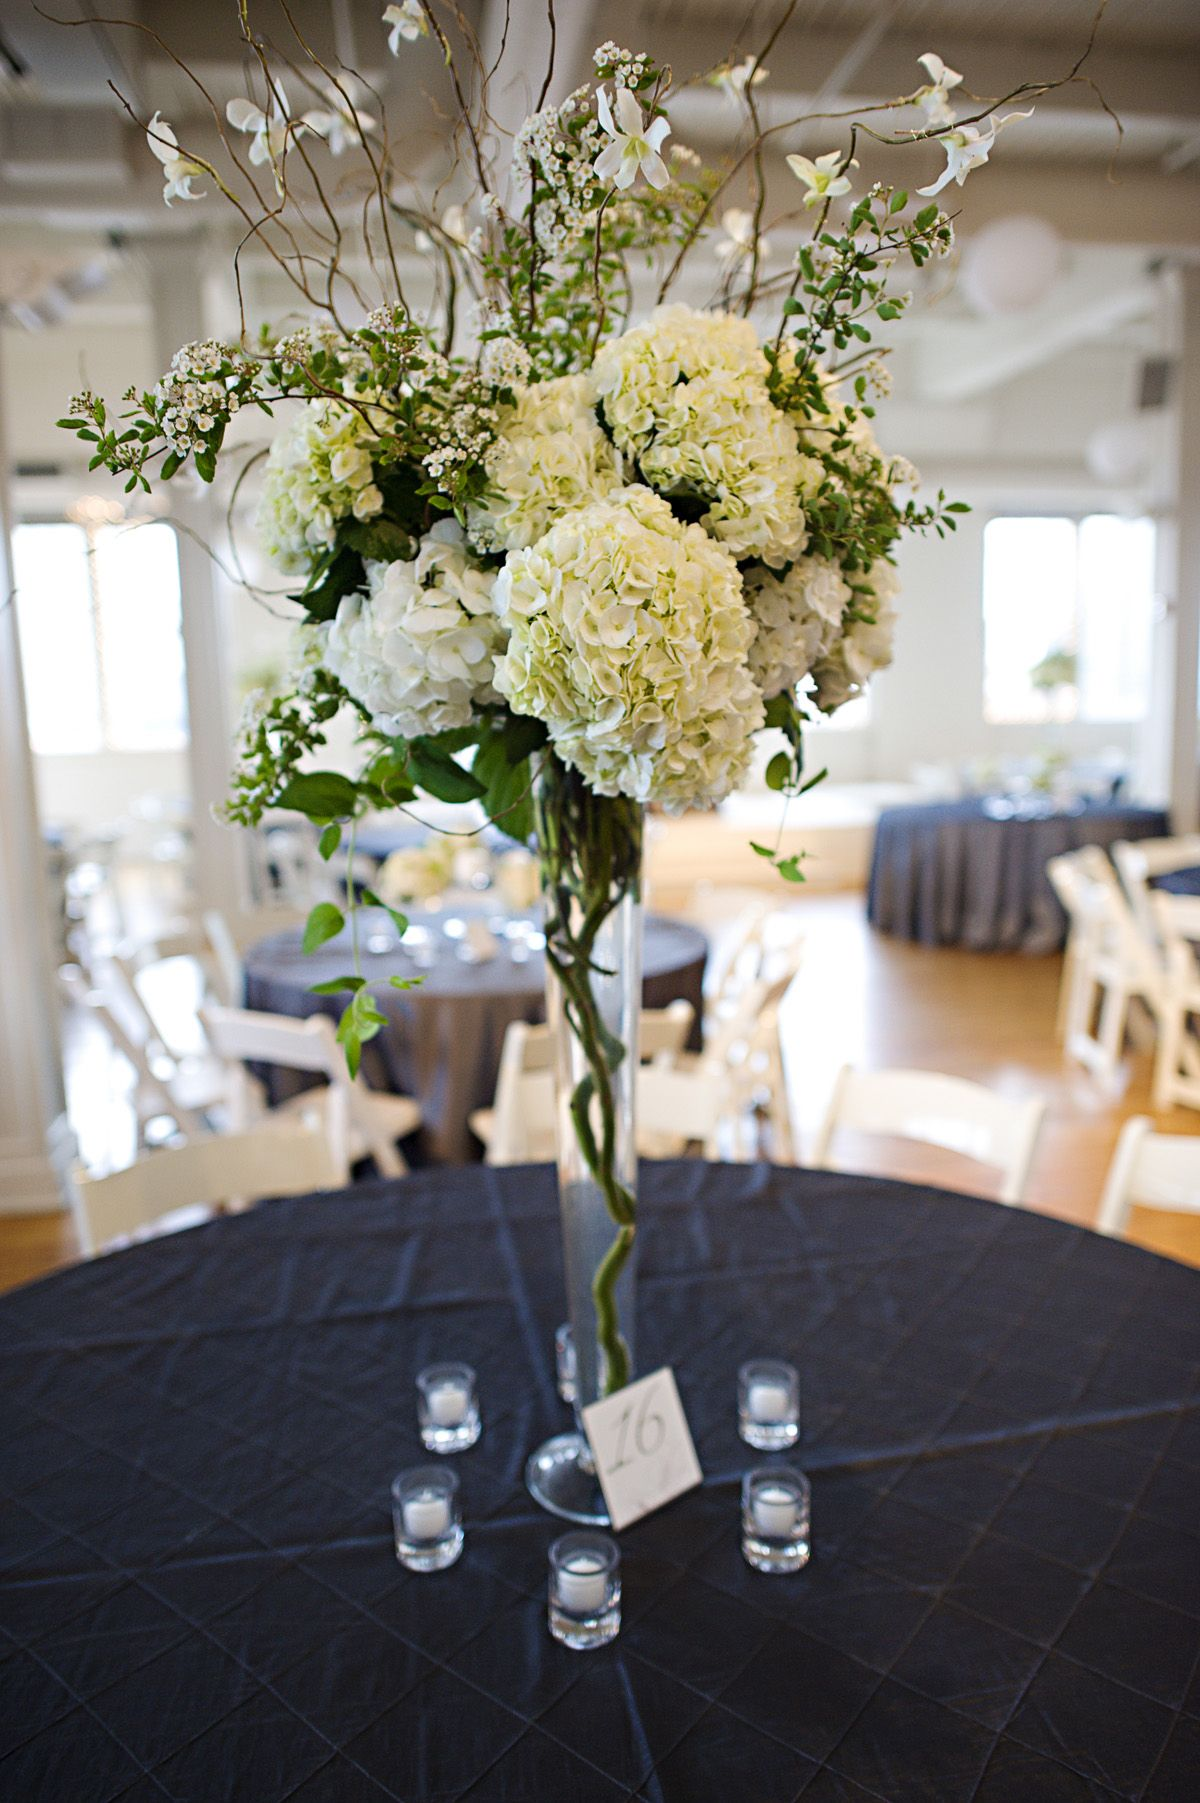 Dried curly willow branches with hydrangeas in tall vase super dried curly willow branches with hydrangeas in tall vase super elegant and simple reviewsmspy